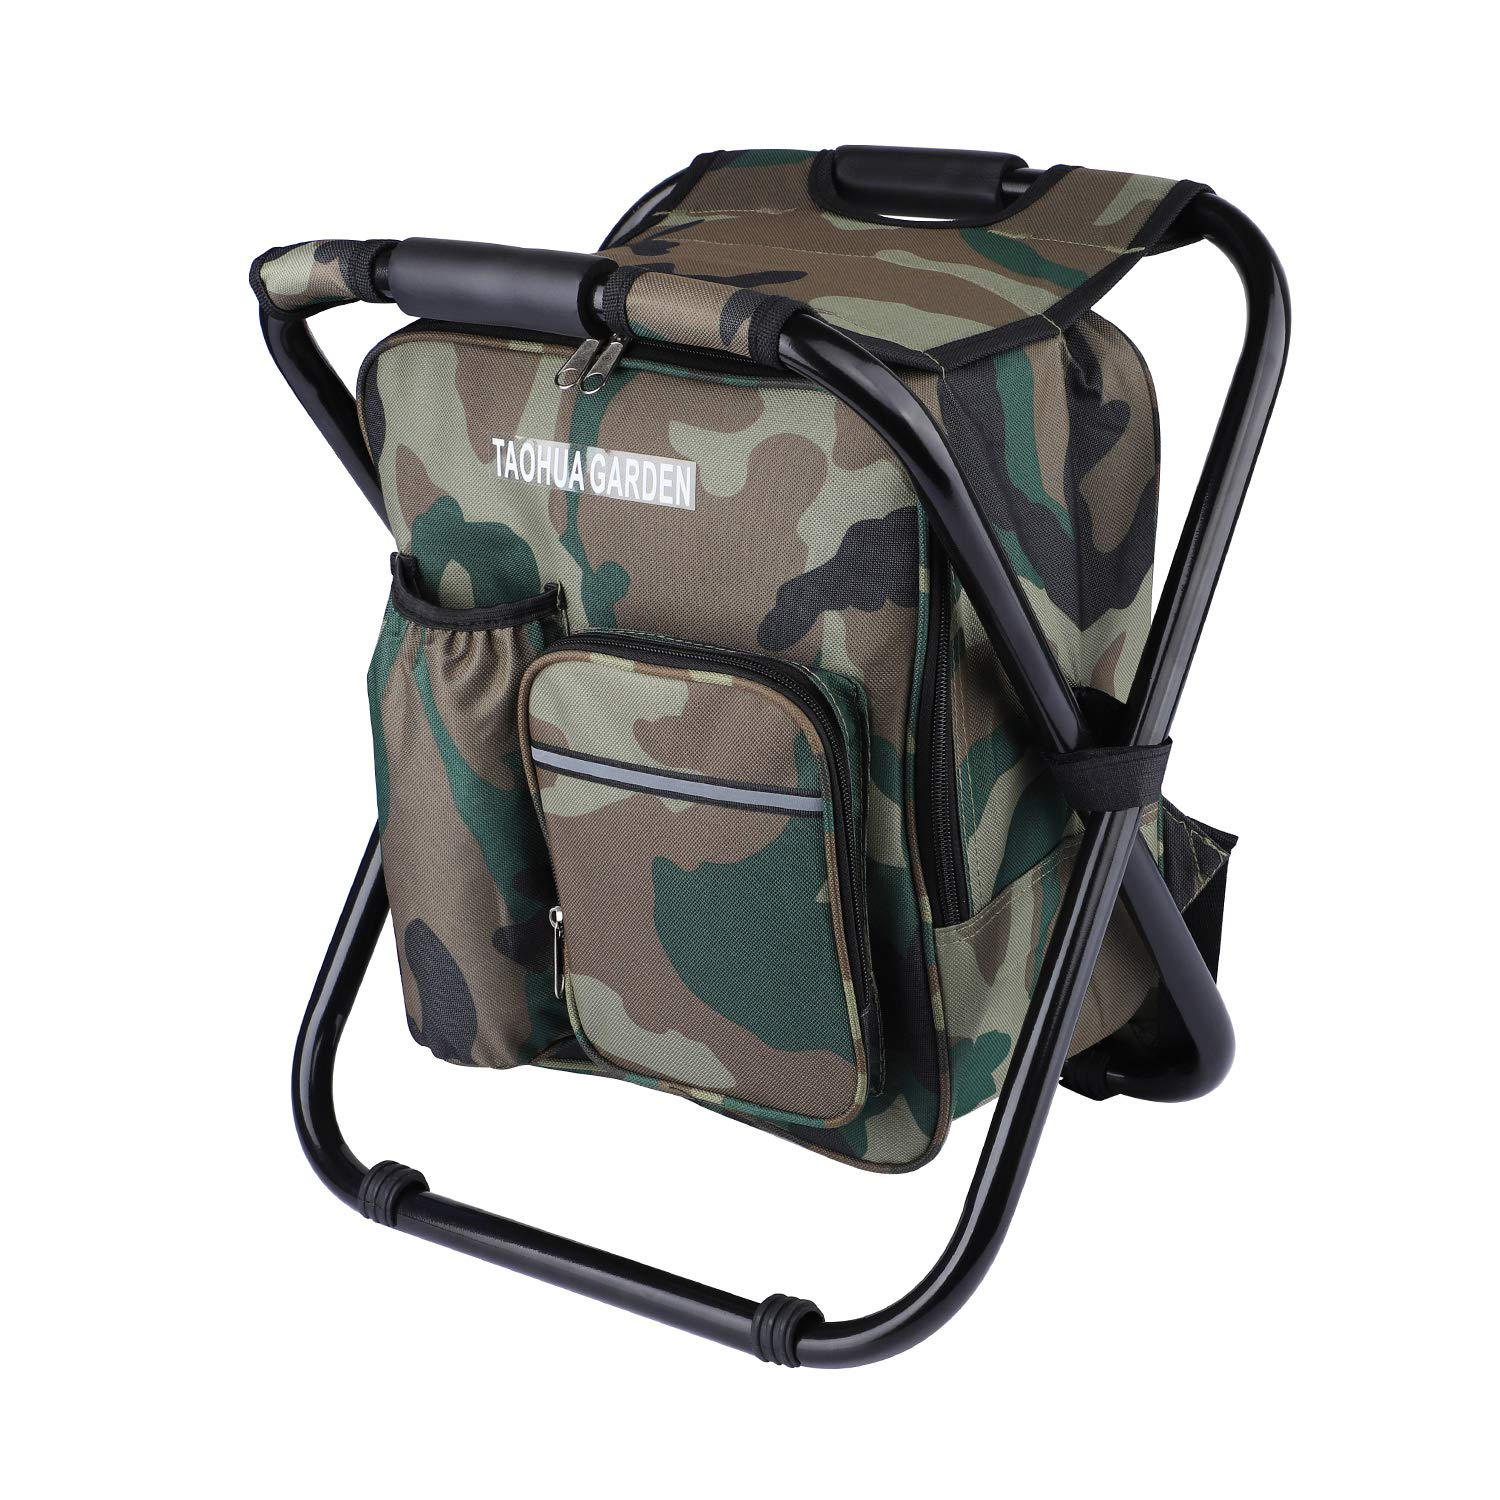 TAOHUA GARDEN Folding Camping Chair & Backpack with Cooler Insulated Picnic Bag Camping Stool Oxford Fabric Hiking Fishing Travel Beach BBQ Outdoor activies (Camouflage)